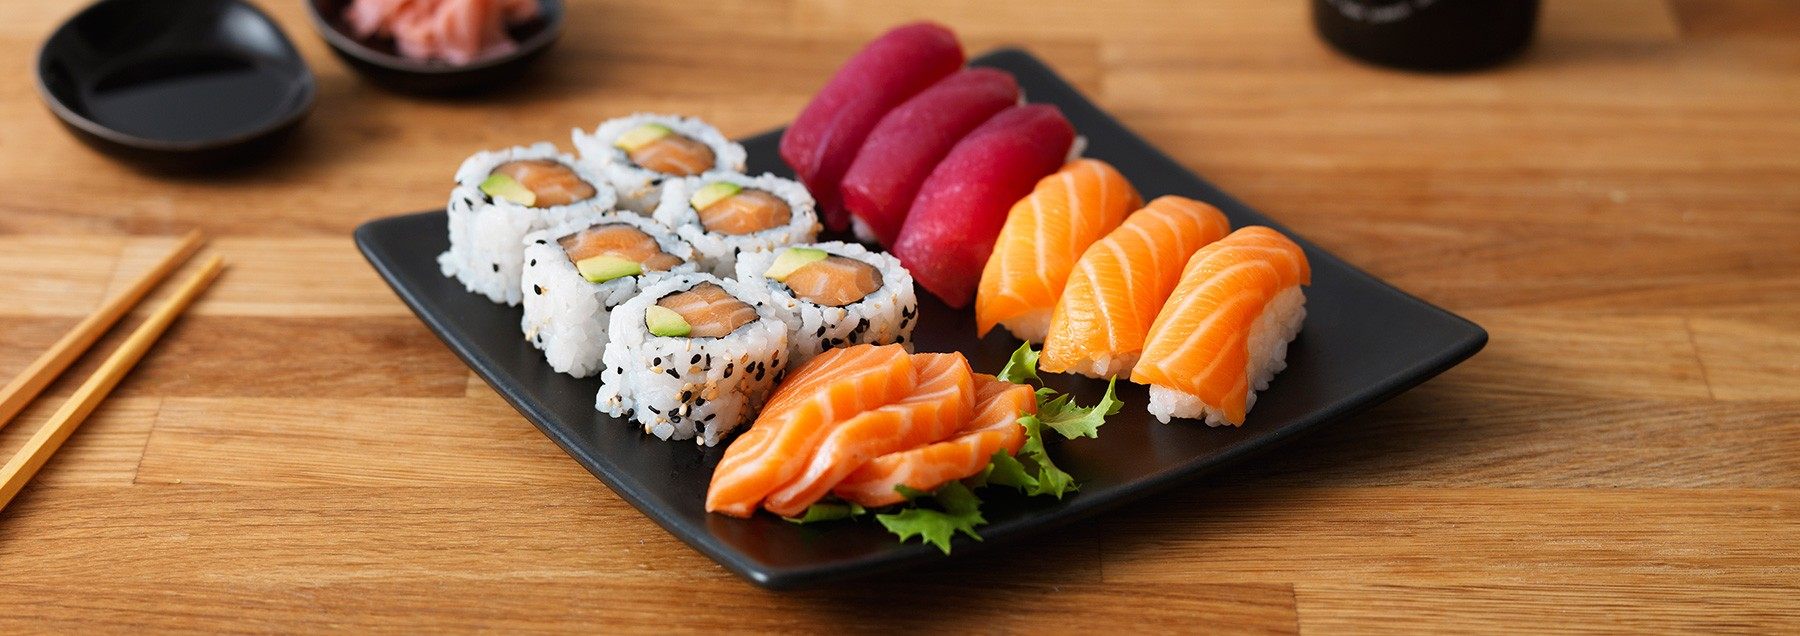 Food Delivery London Sushi